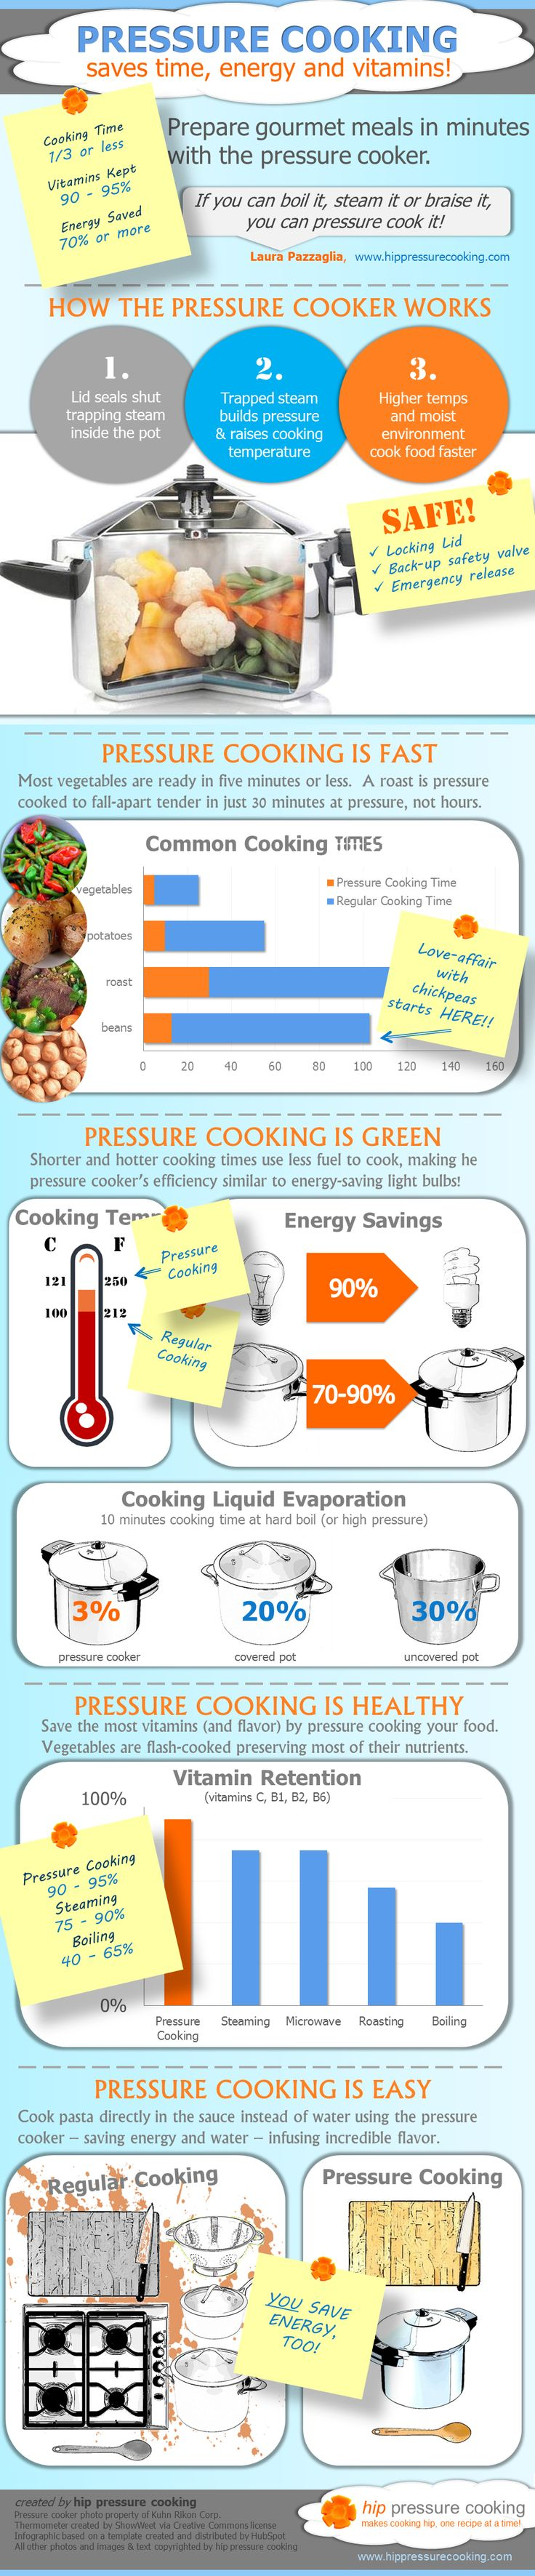 Pressure Cooking Saves Time, Energy & Vitamins....pressure cooking makes me nervous, but I've been wanting to try it!